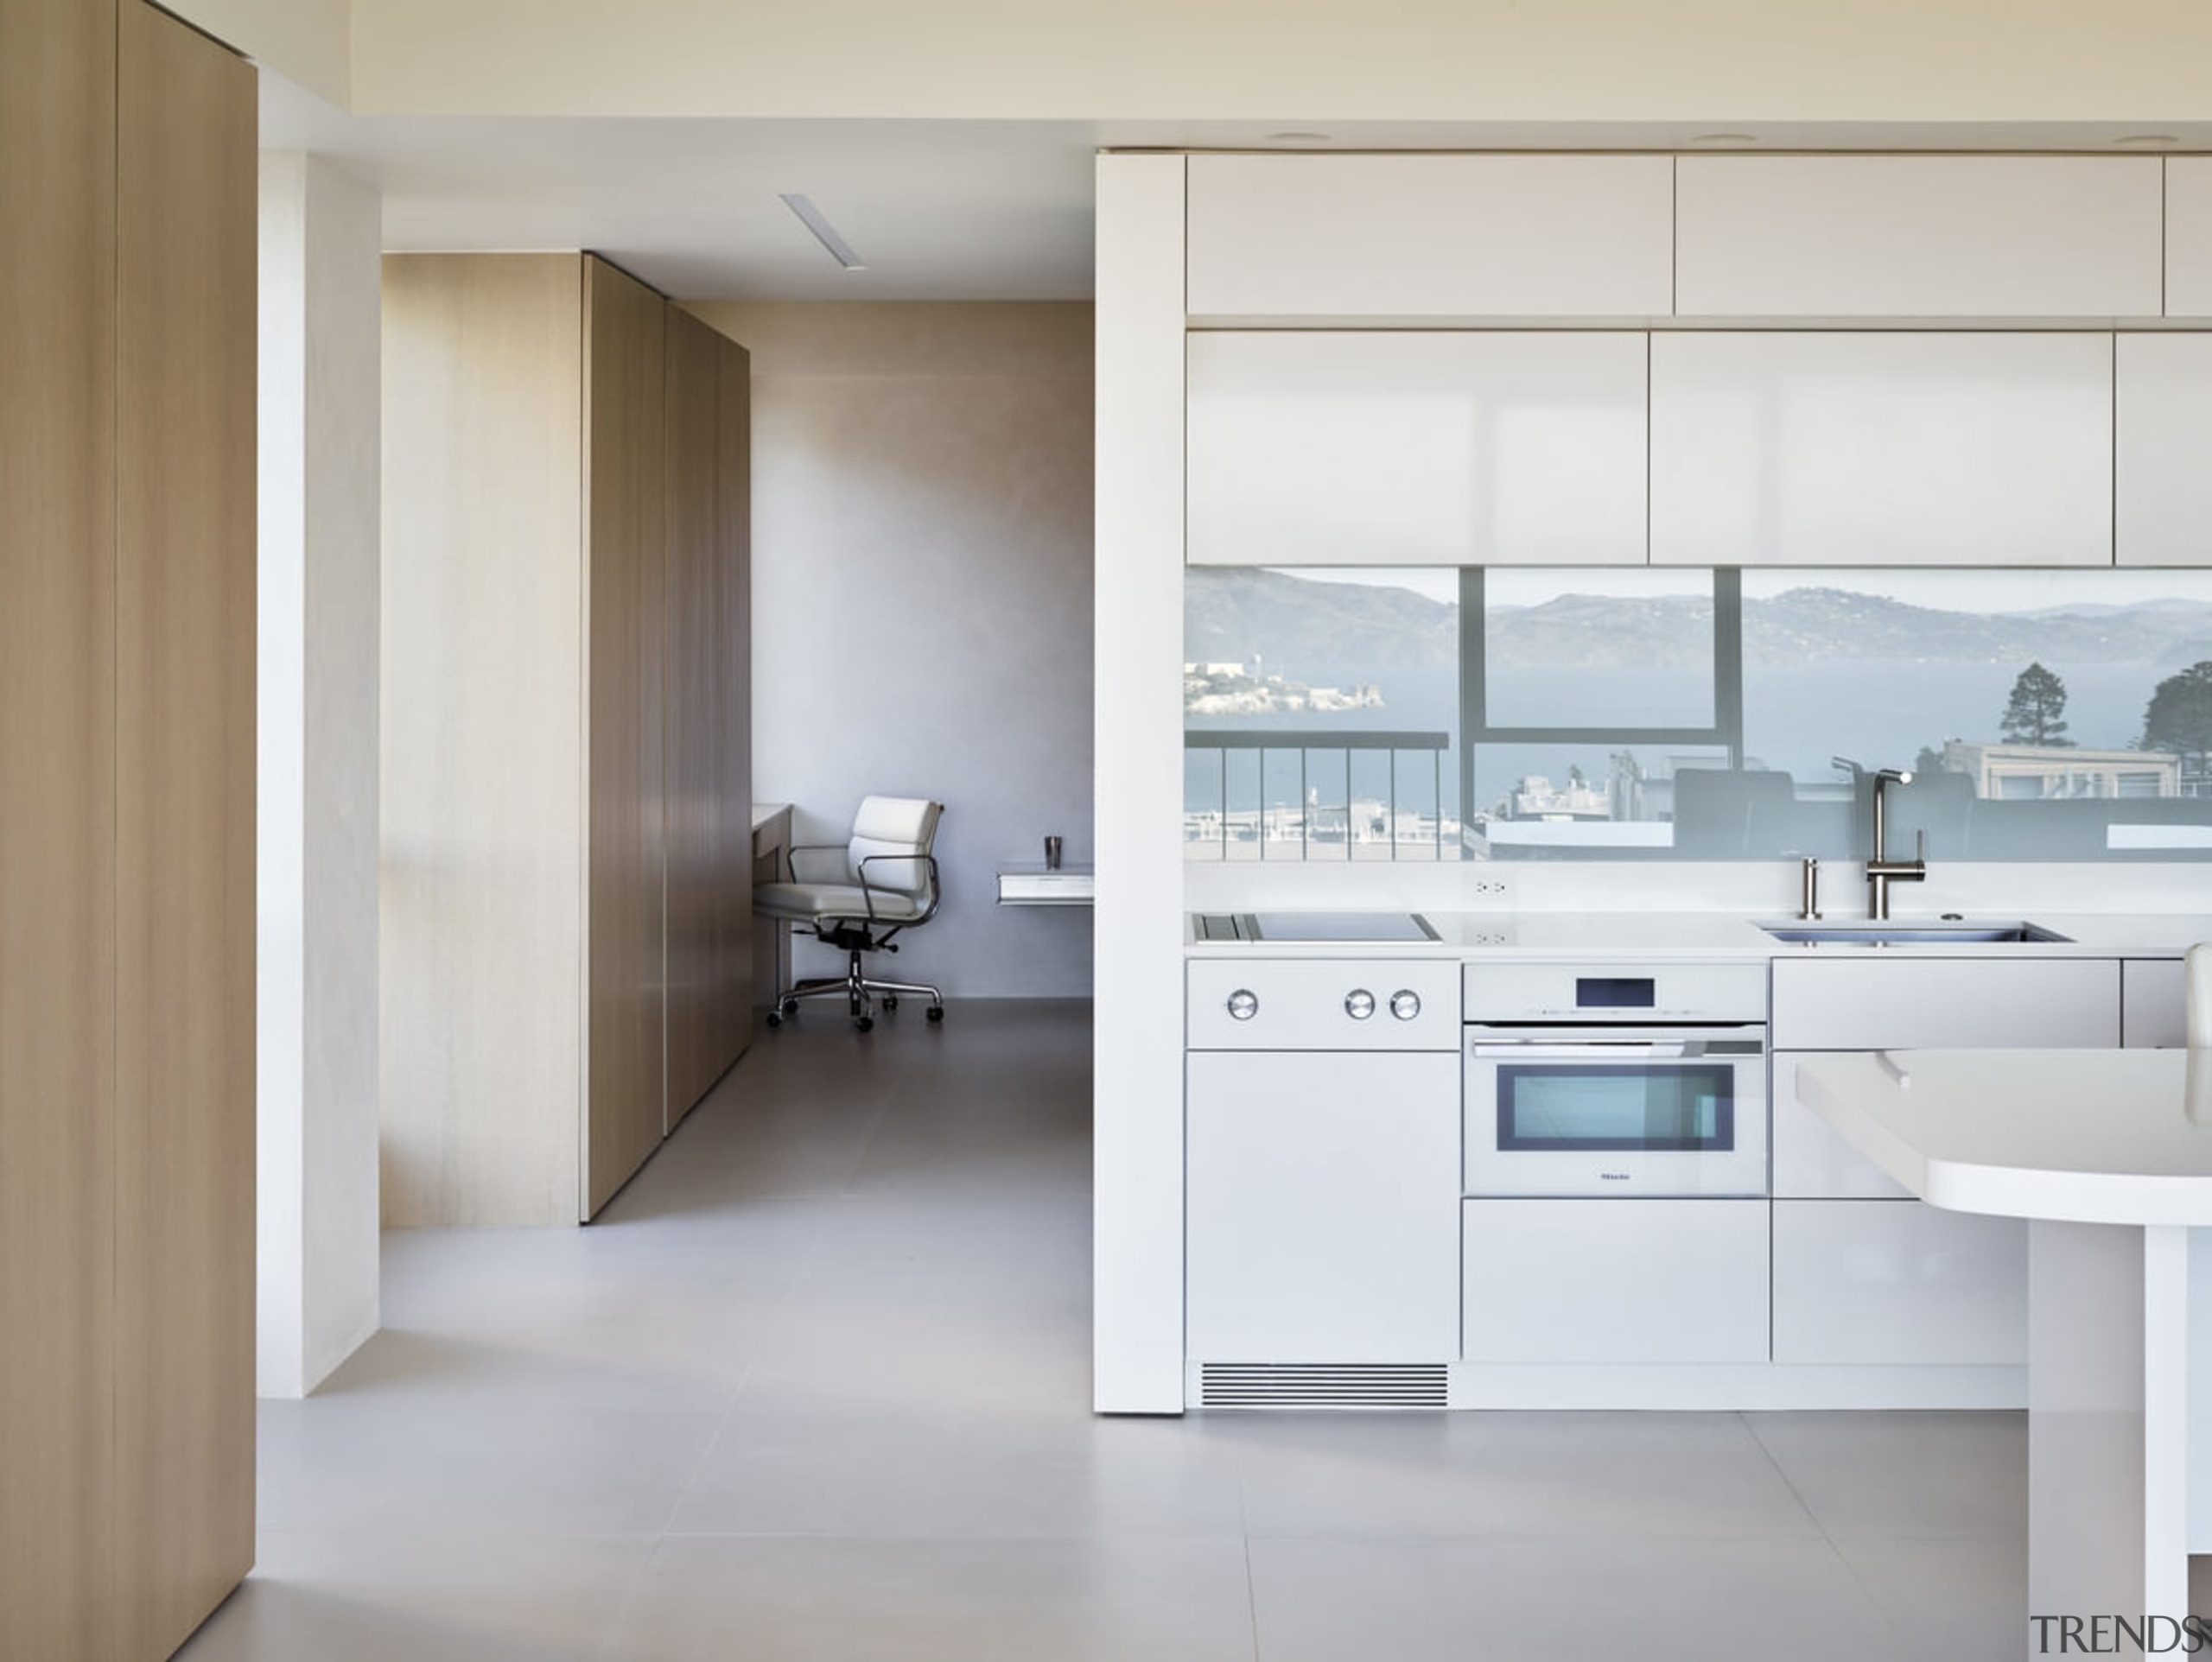 A simple kitchen reflects the bay - A cabinetry, countertop, floor, home appliance, interior design, kitchen, product design, gray